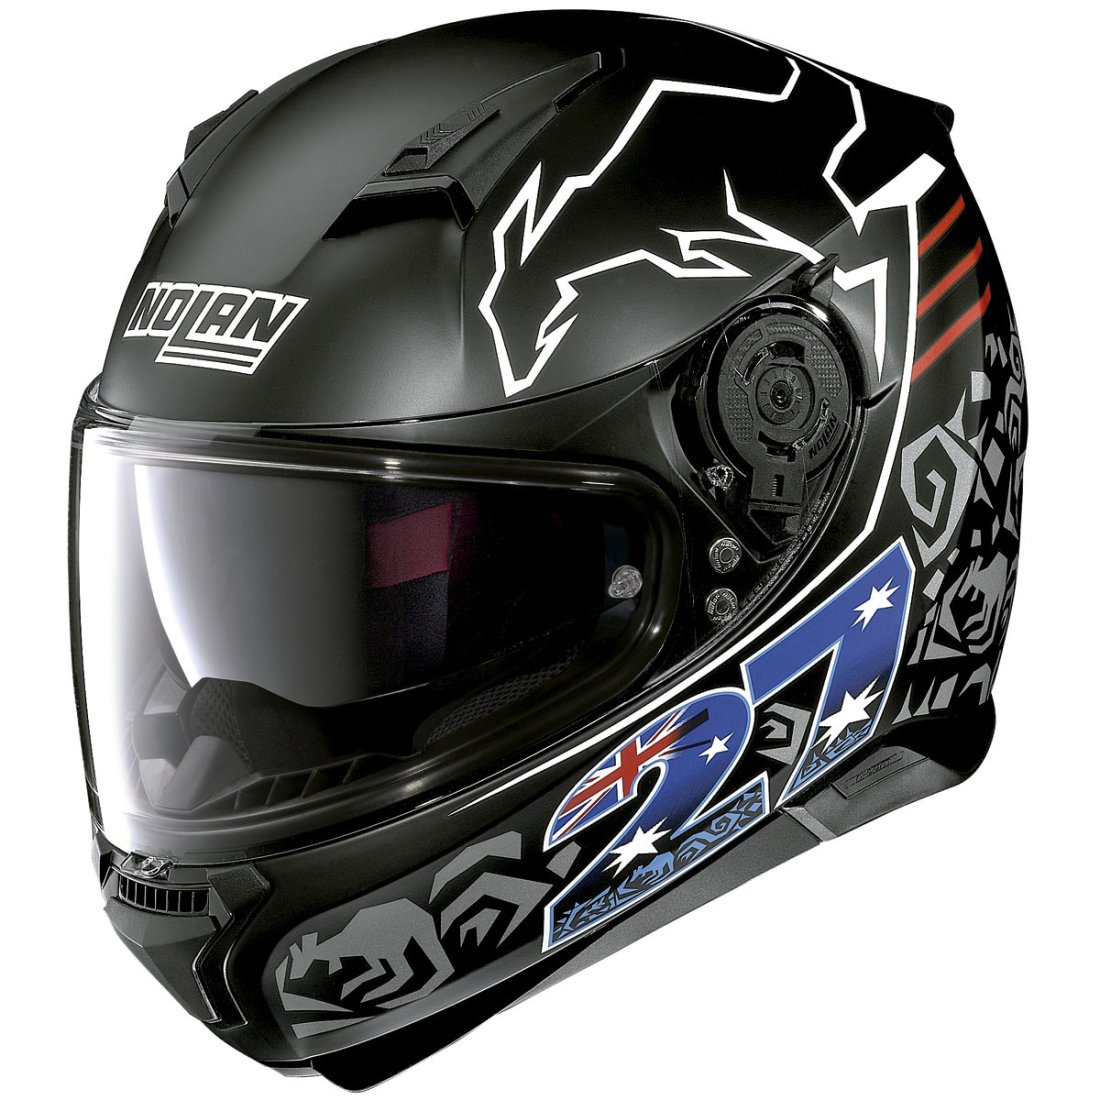 nolan n87 iconic replica n com casey stoner flat black helmet motocard. Black Bedroom Furniture Sets. Home Design Ideas